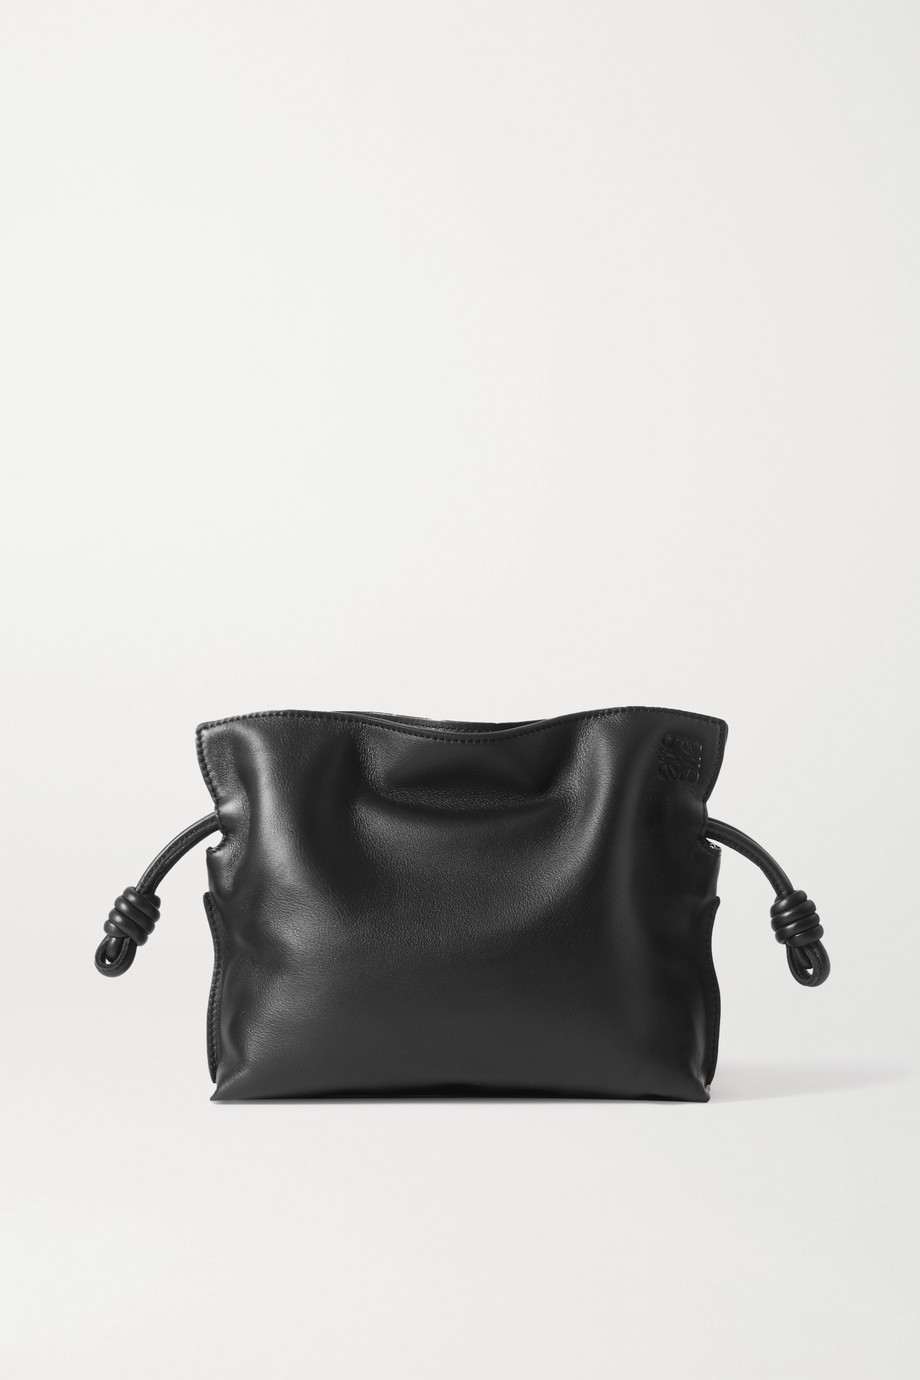 Loewe Flamenco mini leather clutch